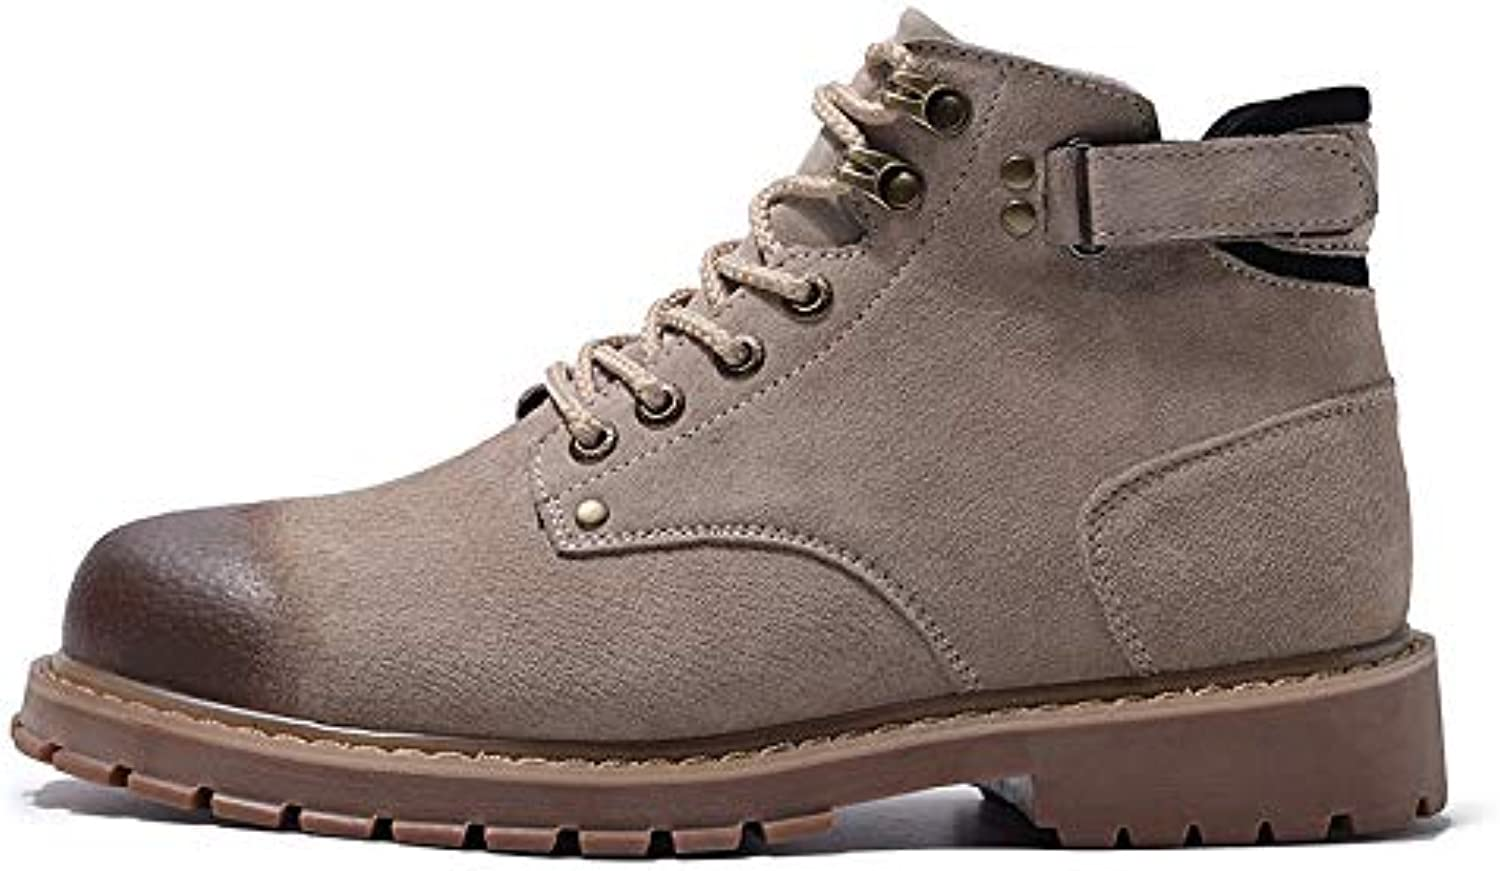 LOVDRAM Boots Men's New Winter Men'S Boots Casual Wild Fashion Thick Warm Warm And Comfortable Desert Tooling Boots High Help Martin Boots Men